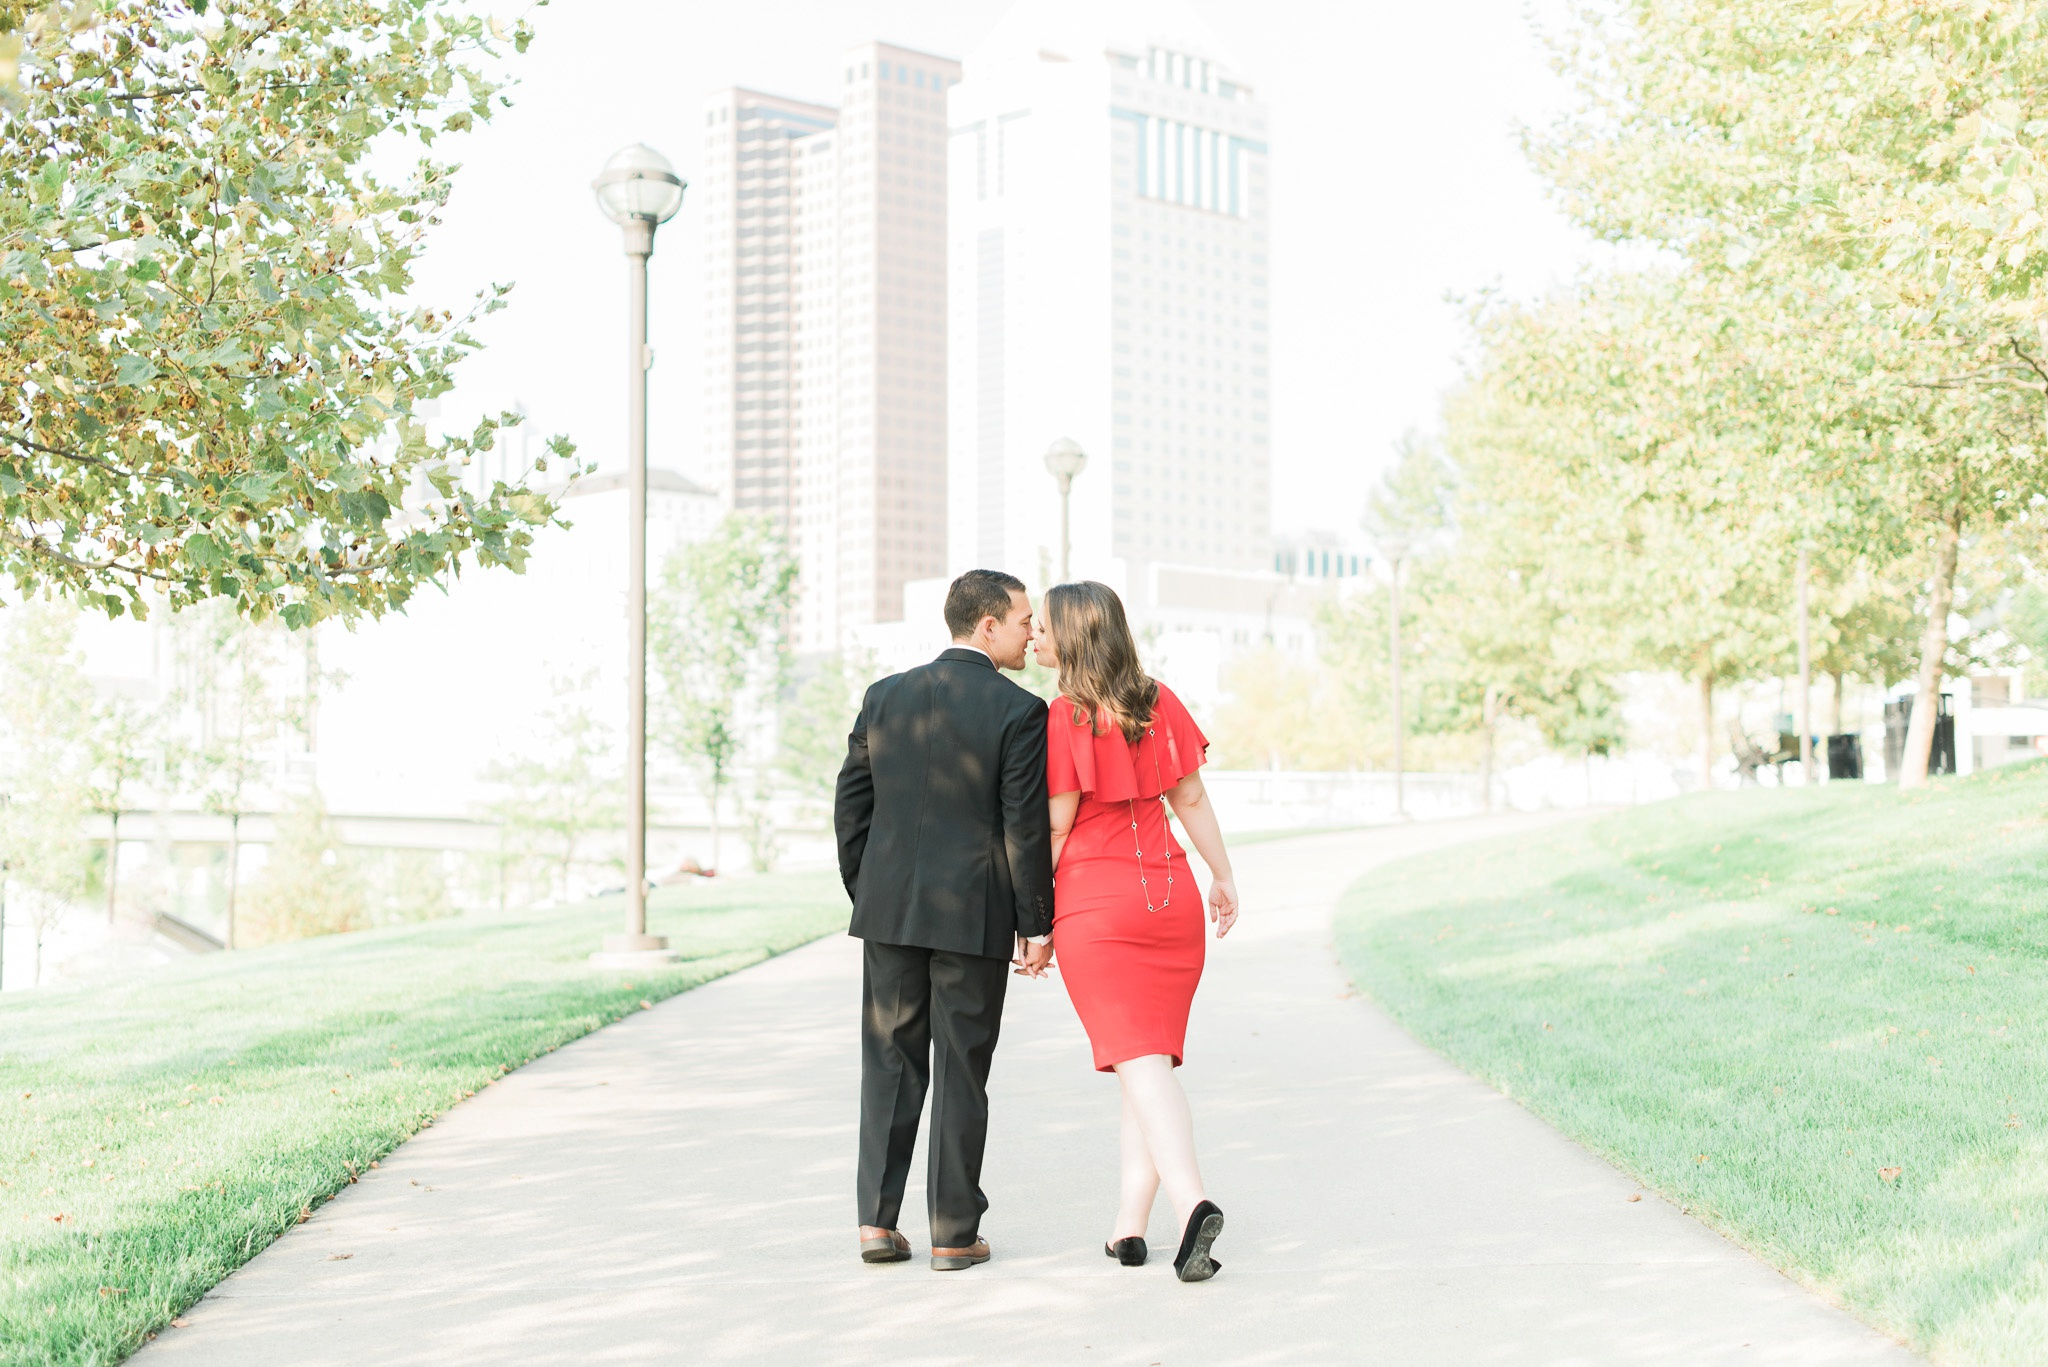 downtown-columbus-german-village-engagement-session-43.jpg